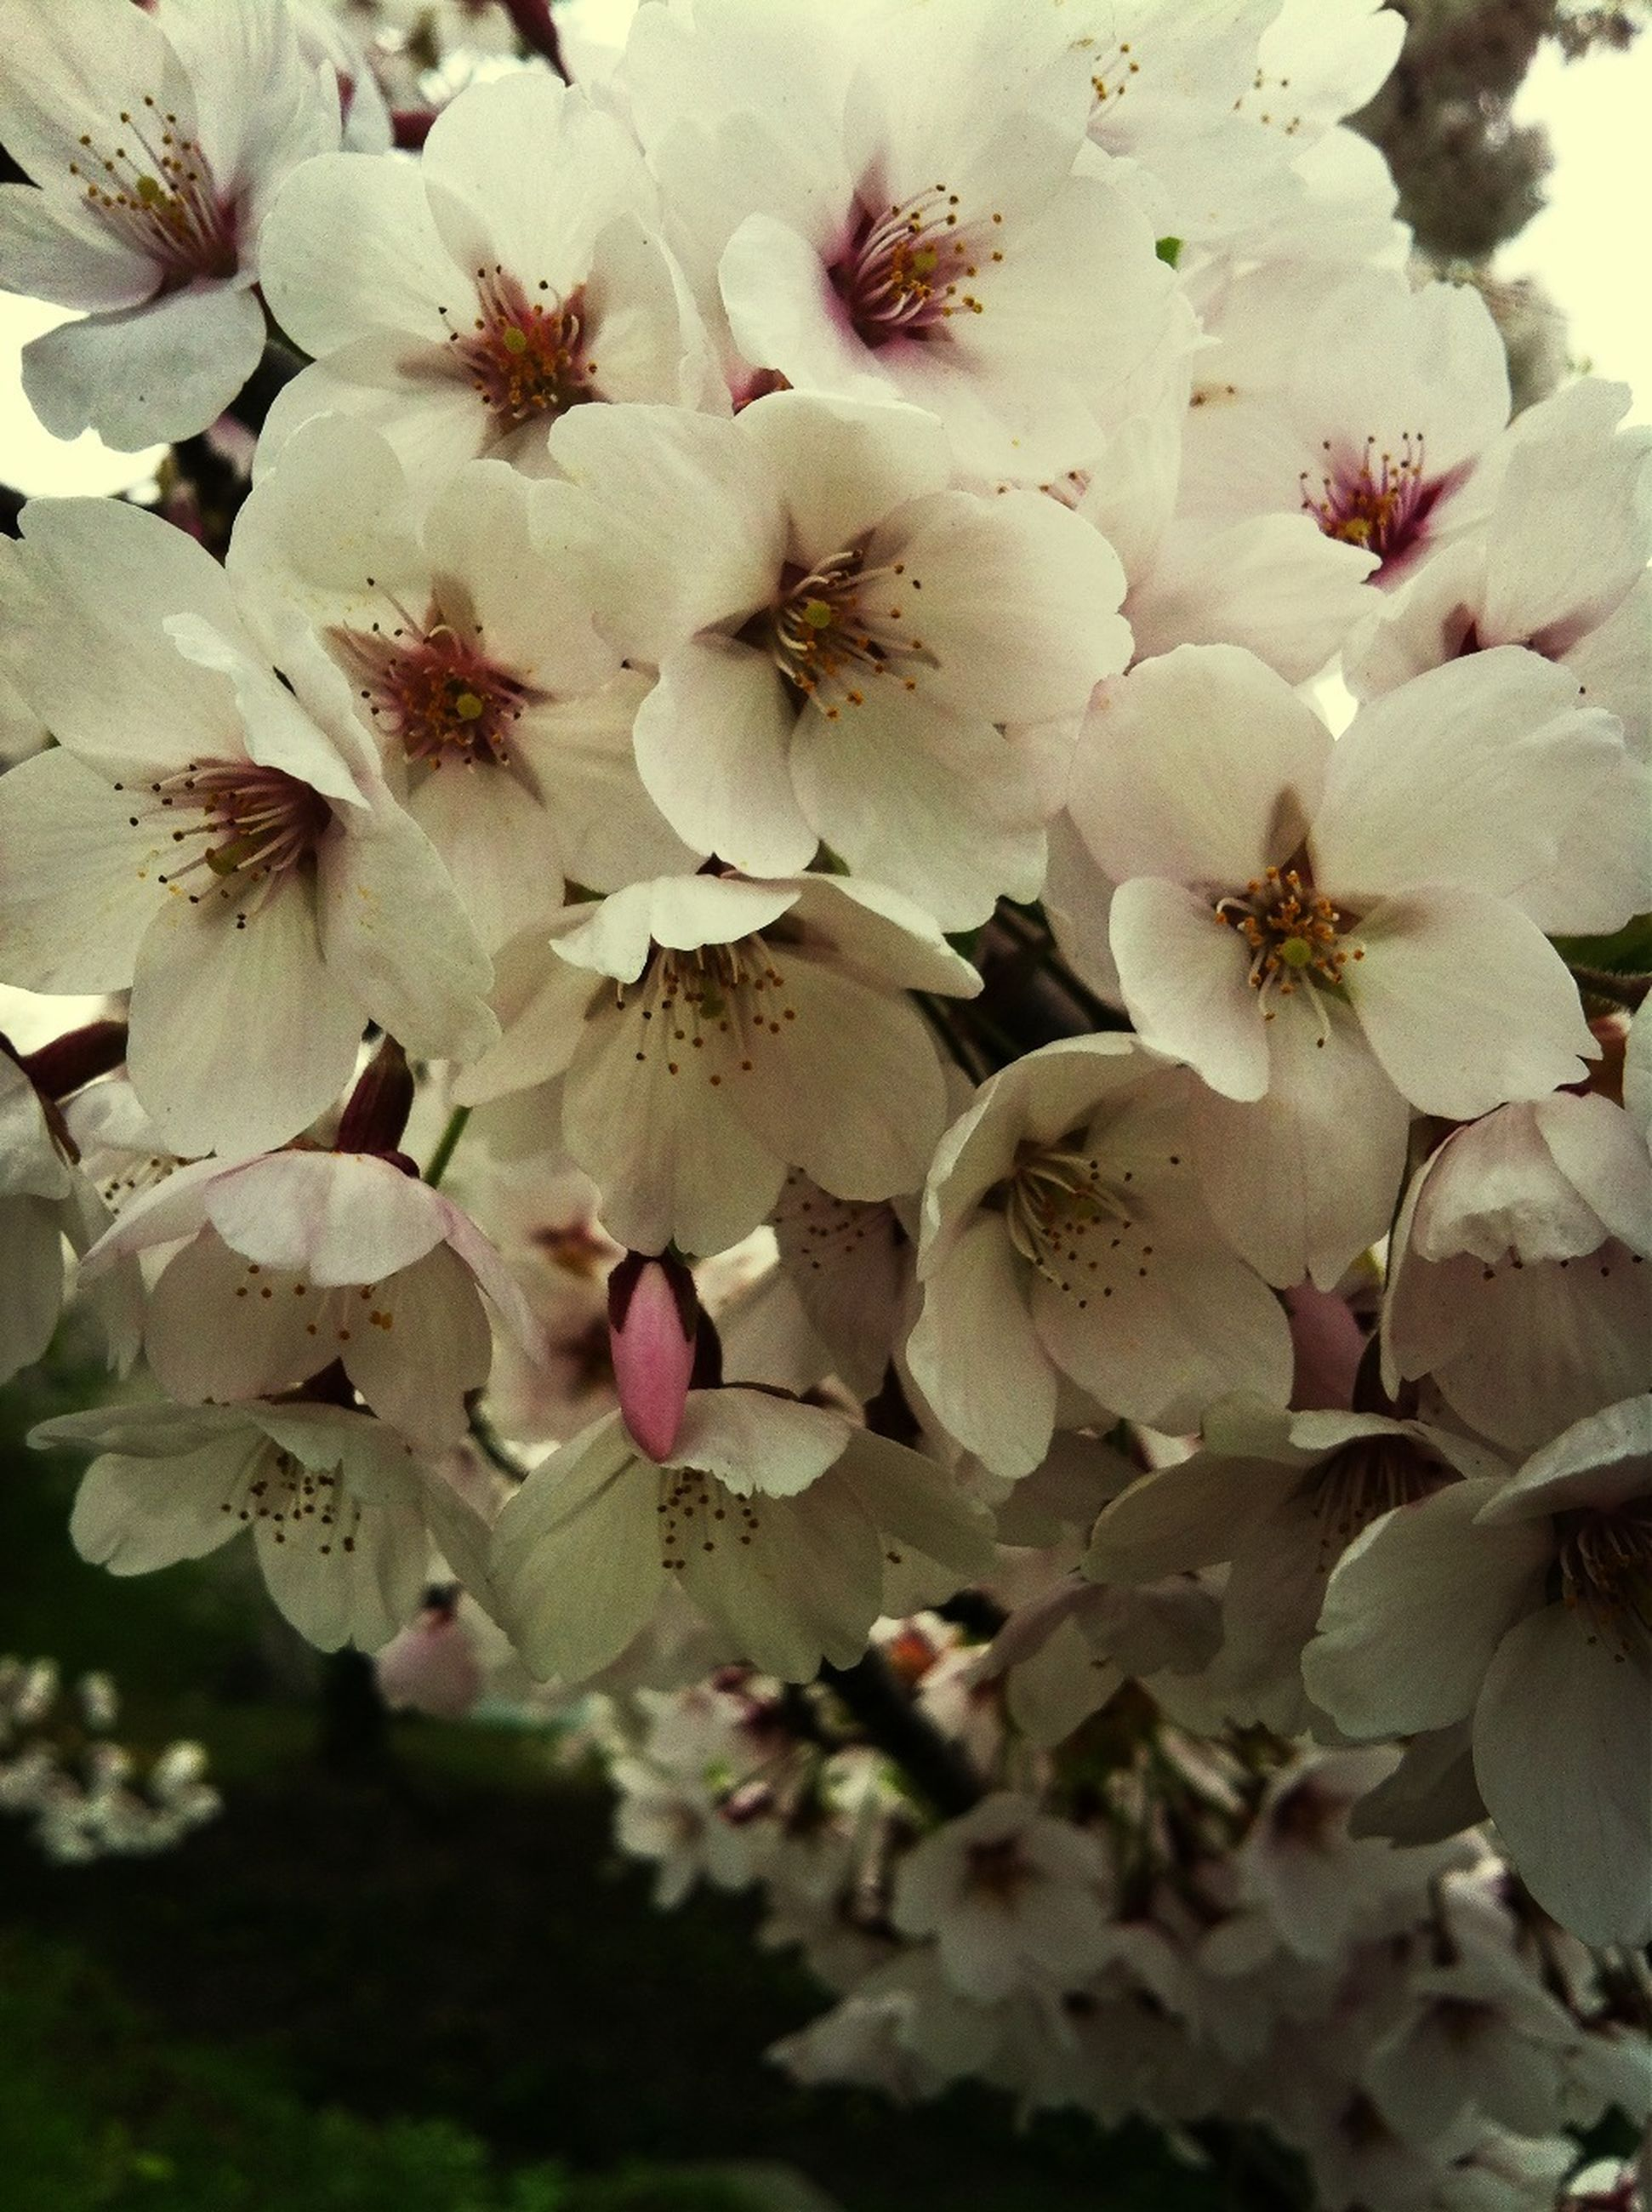 flower, freshness, growth, fragility, beauty in nature, petal, nature, close-up, cherry blossom, white color, pink color, blossom, blooming, branch, cherry tree, tree, flower head, focus on foreground, in bloom, springtime